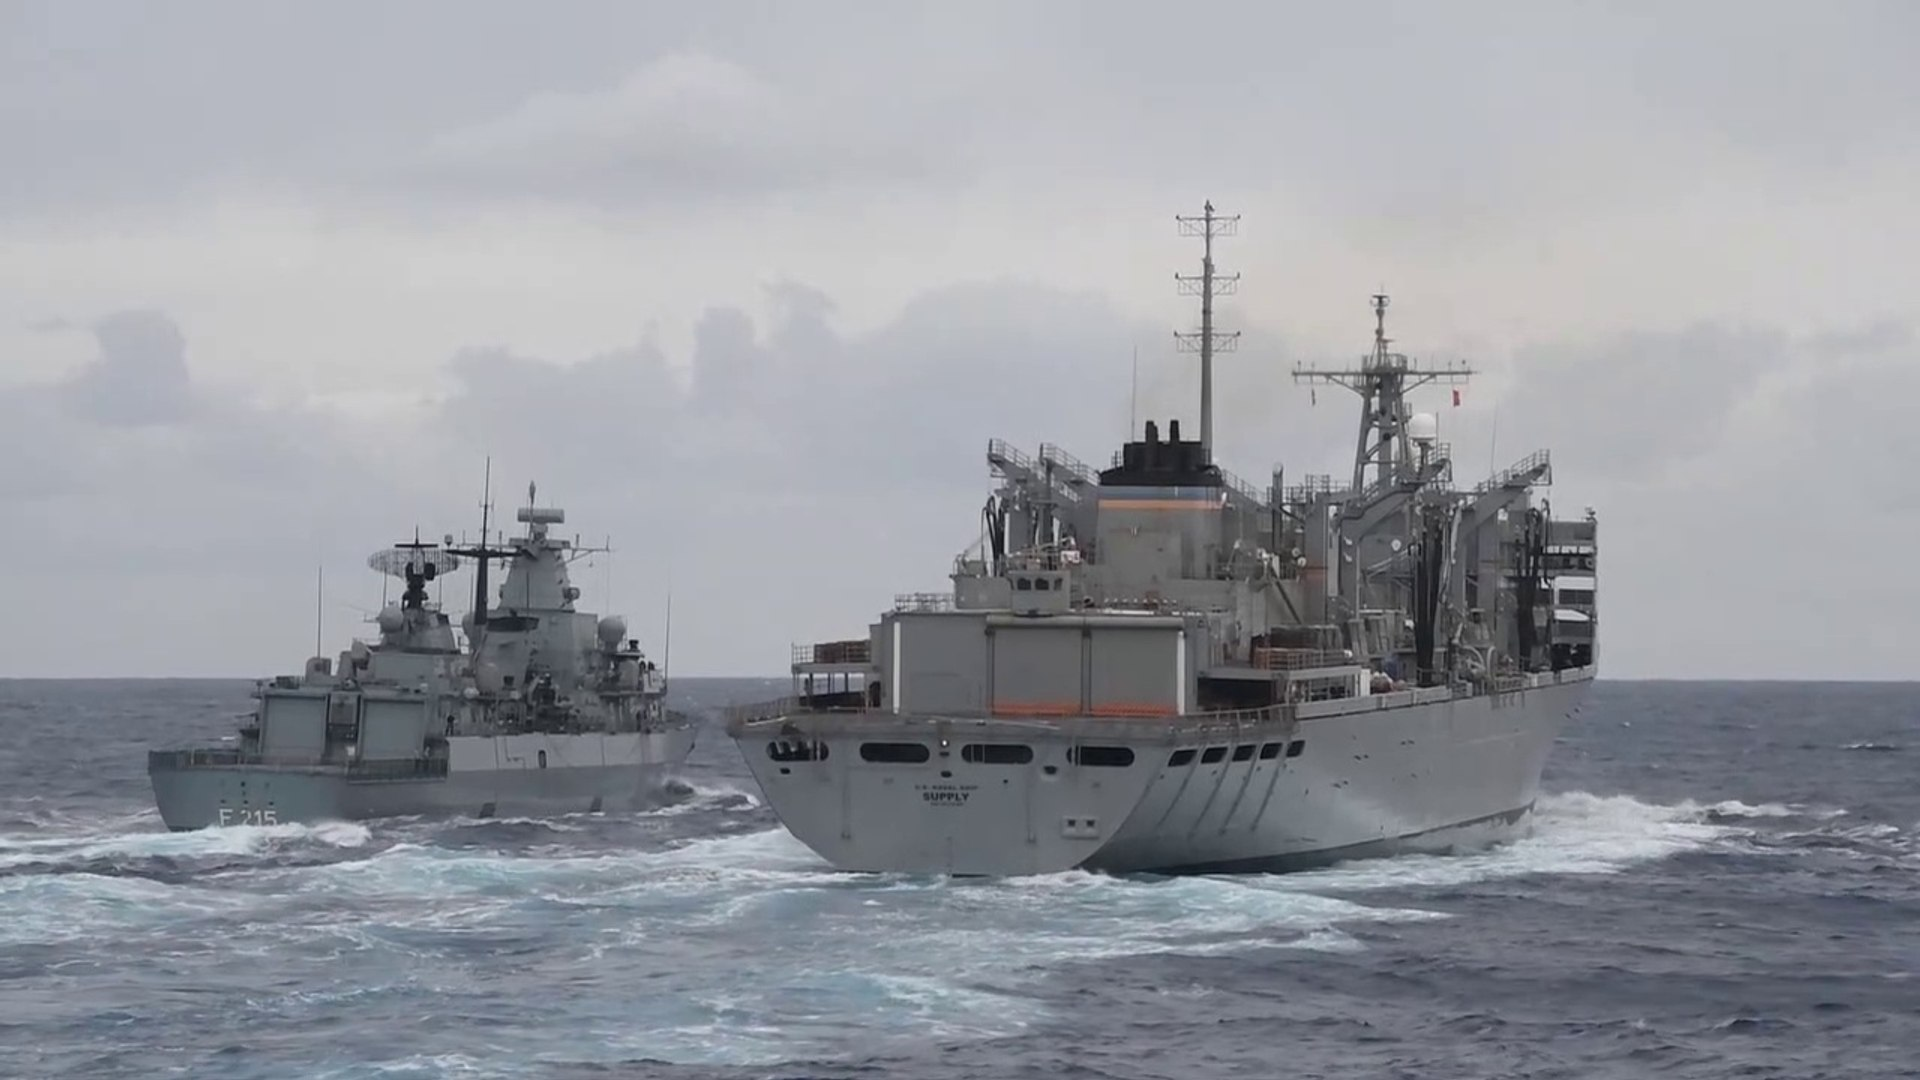 Canadian, German, Spanish, Italian, Warships • NATO Exercise off of the Coast of Portugal • May 23